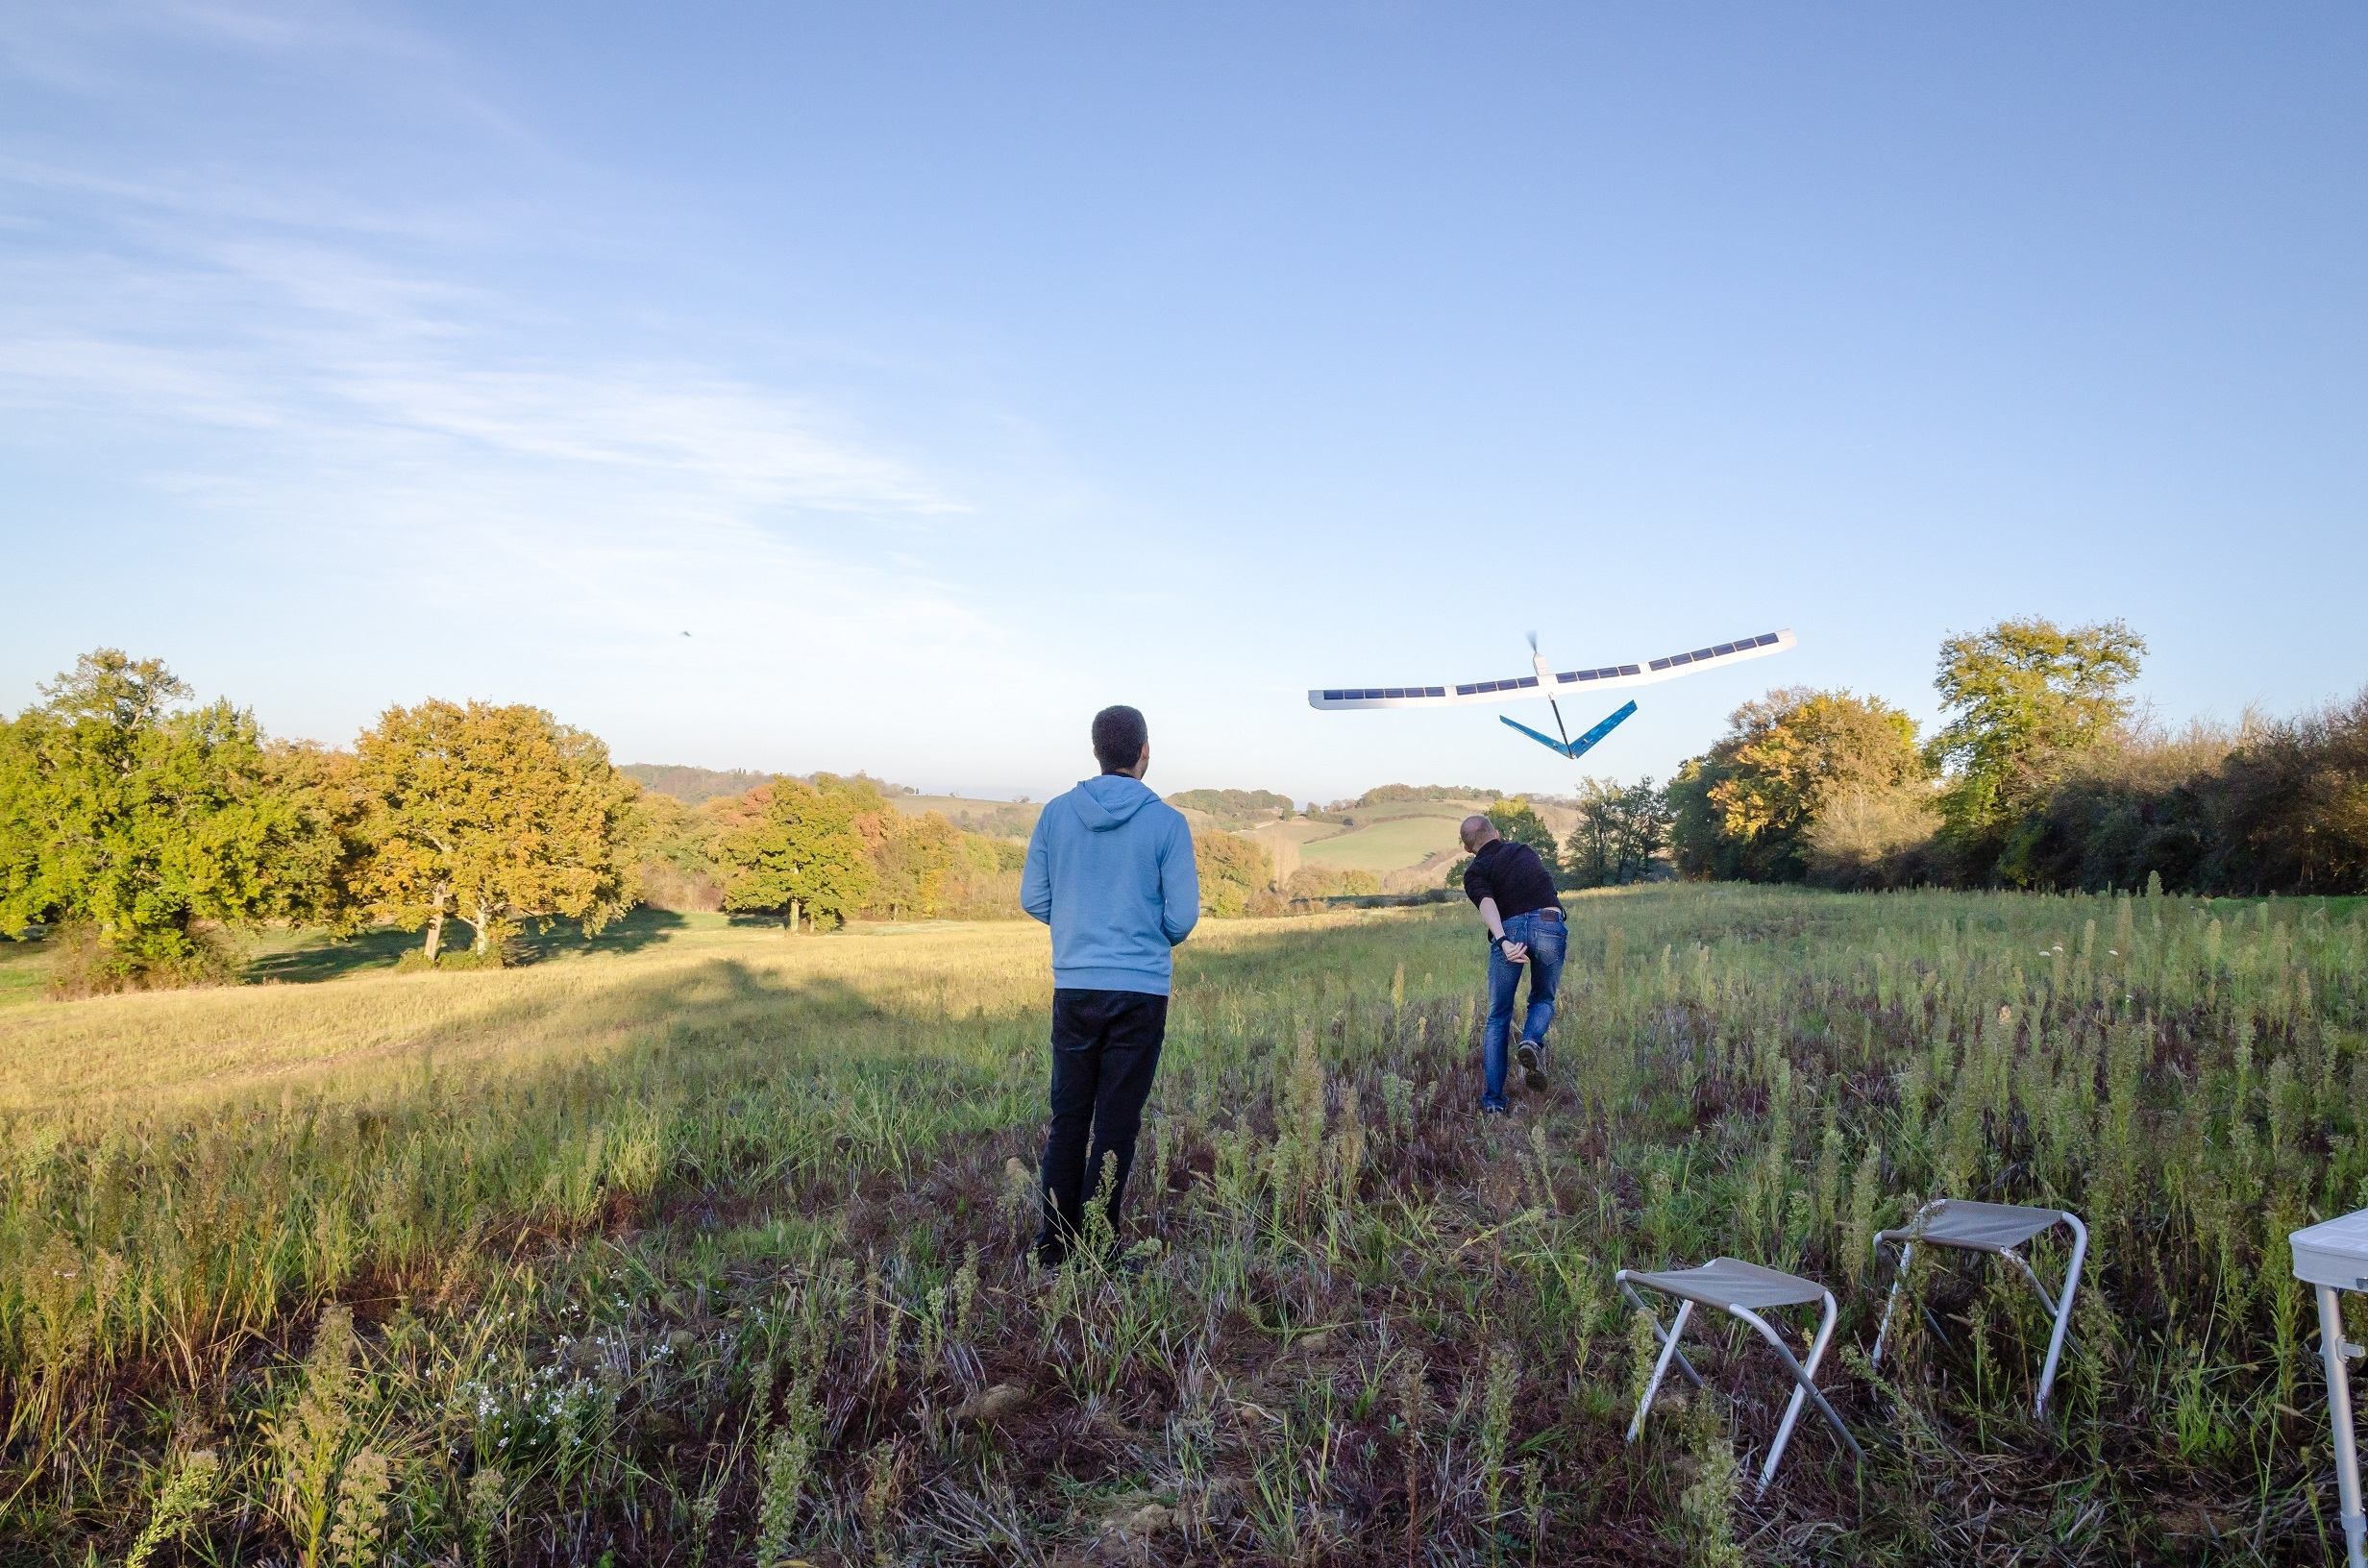 In the Photo: Laurent Rivière and his co-founder Laurent Moure launching the solar drone Photo Credit: Sunbirds